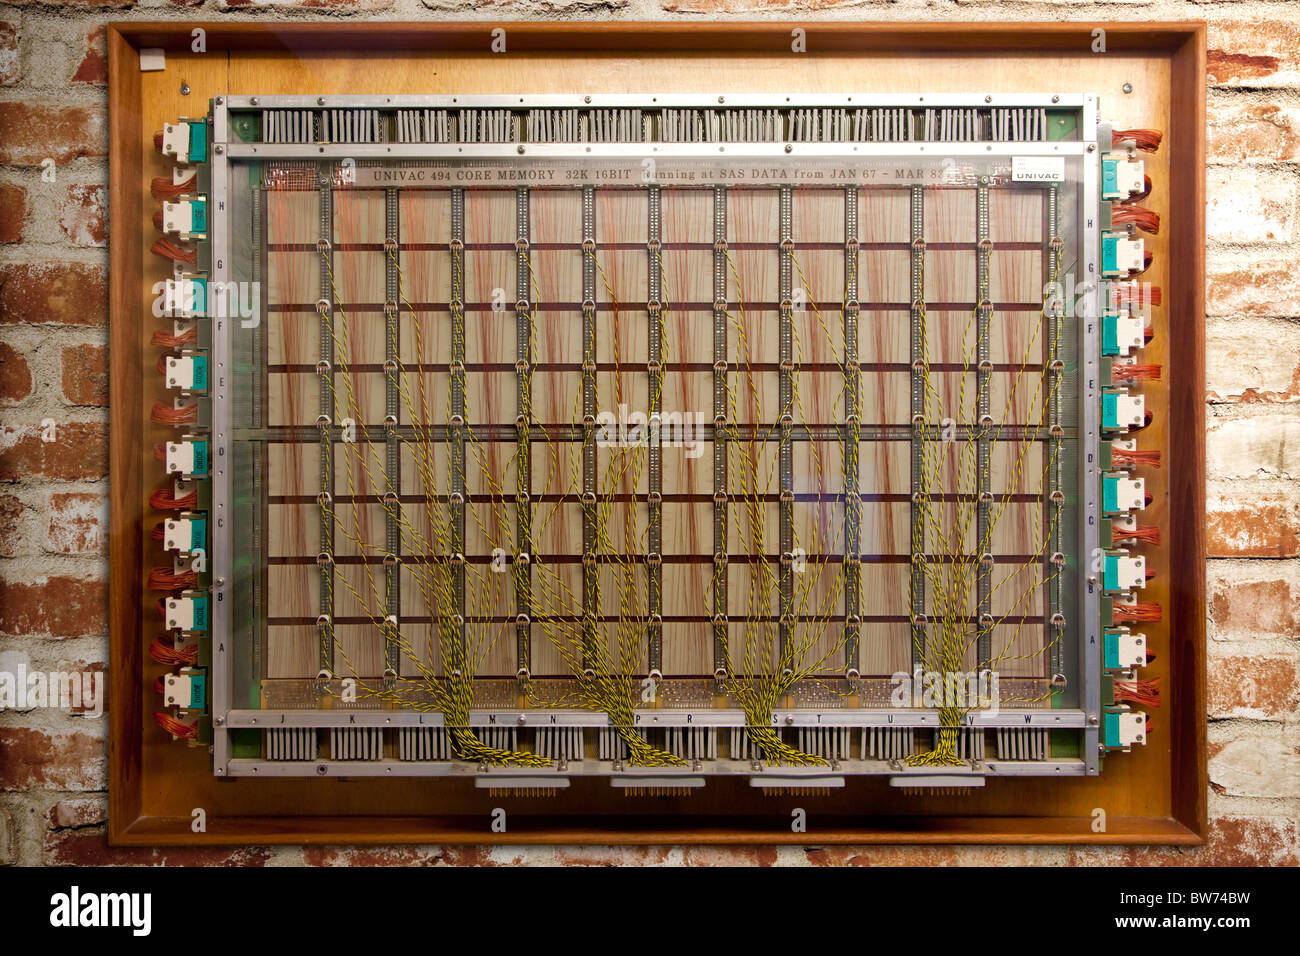 Module of 32 kilobyte 16 bit Univac core memory from 1967 - Stock Image